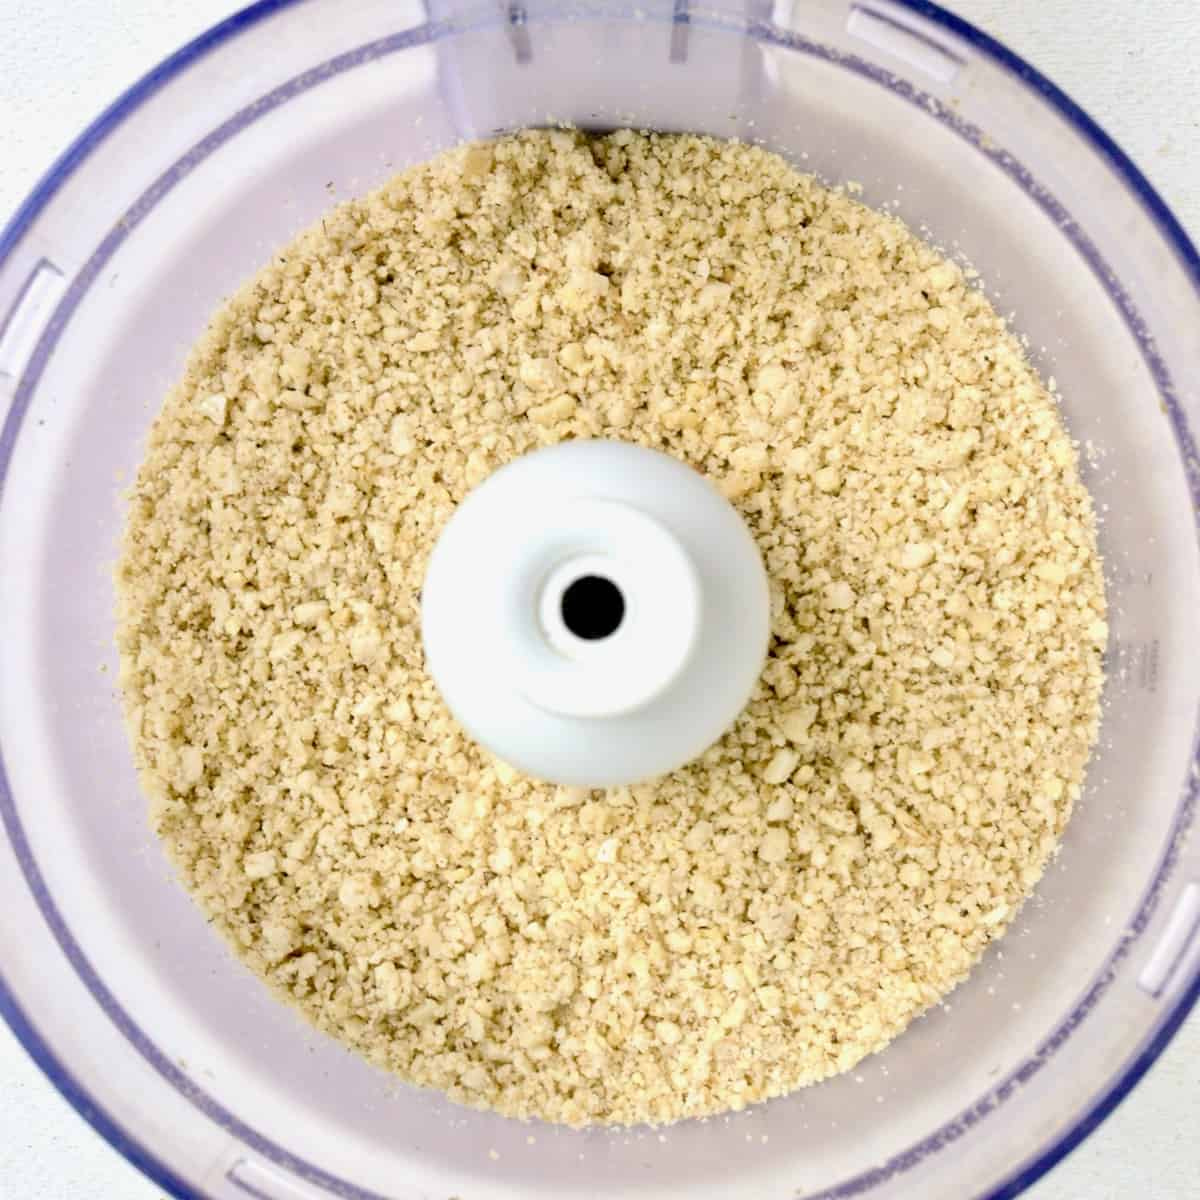 The mixed nuts have been ground to a slightly grainy texture in a food processor.